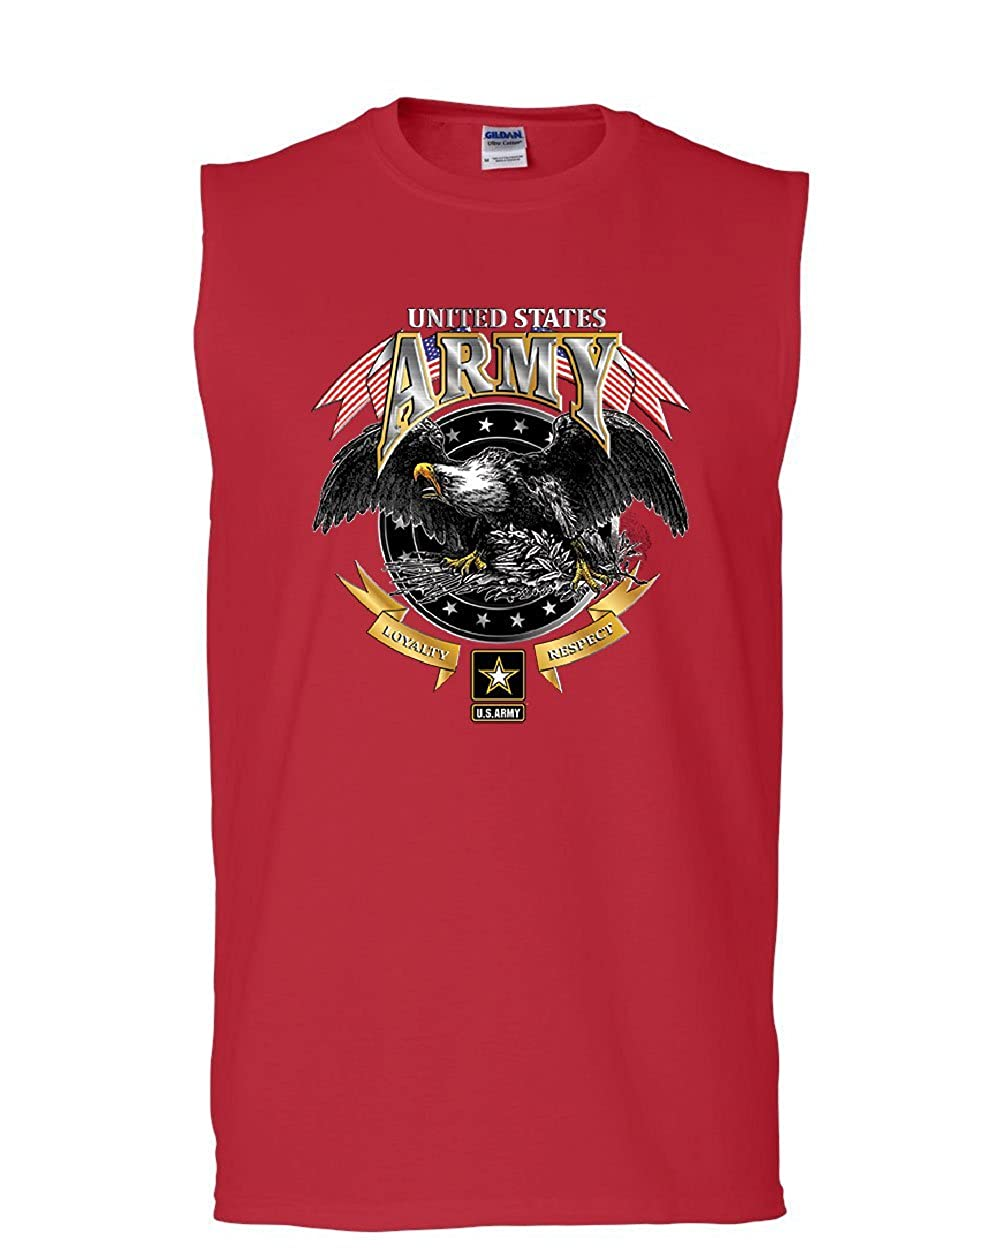 Tee Hunt United States Army Muscle Shirt Loyalty Respect Bald Eagle Pow Mia Sleeveless